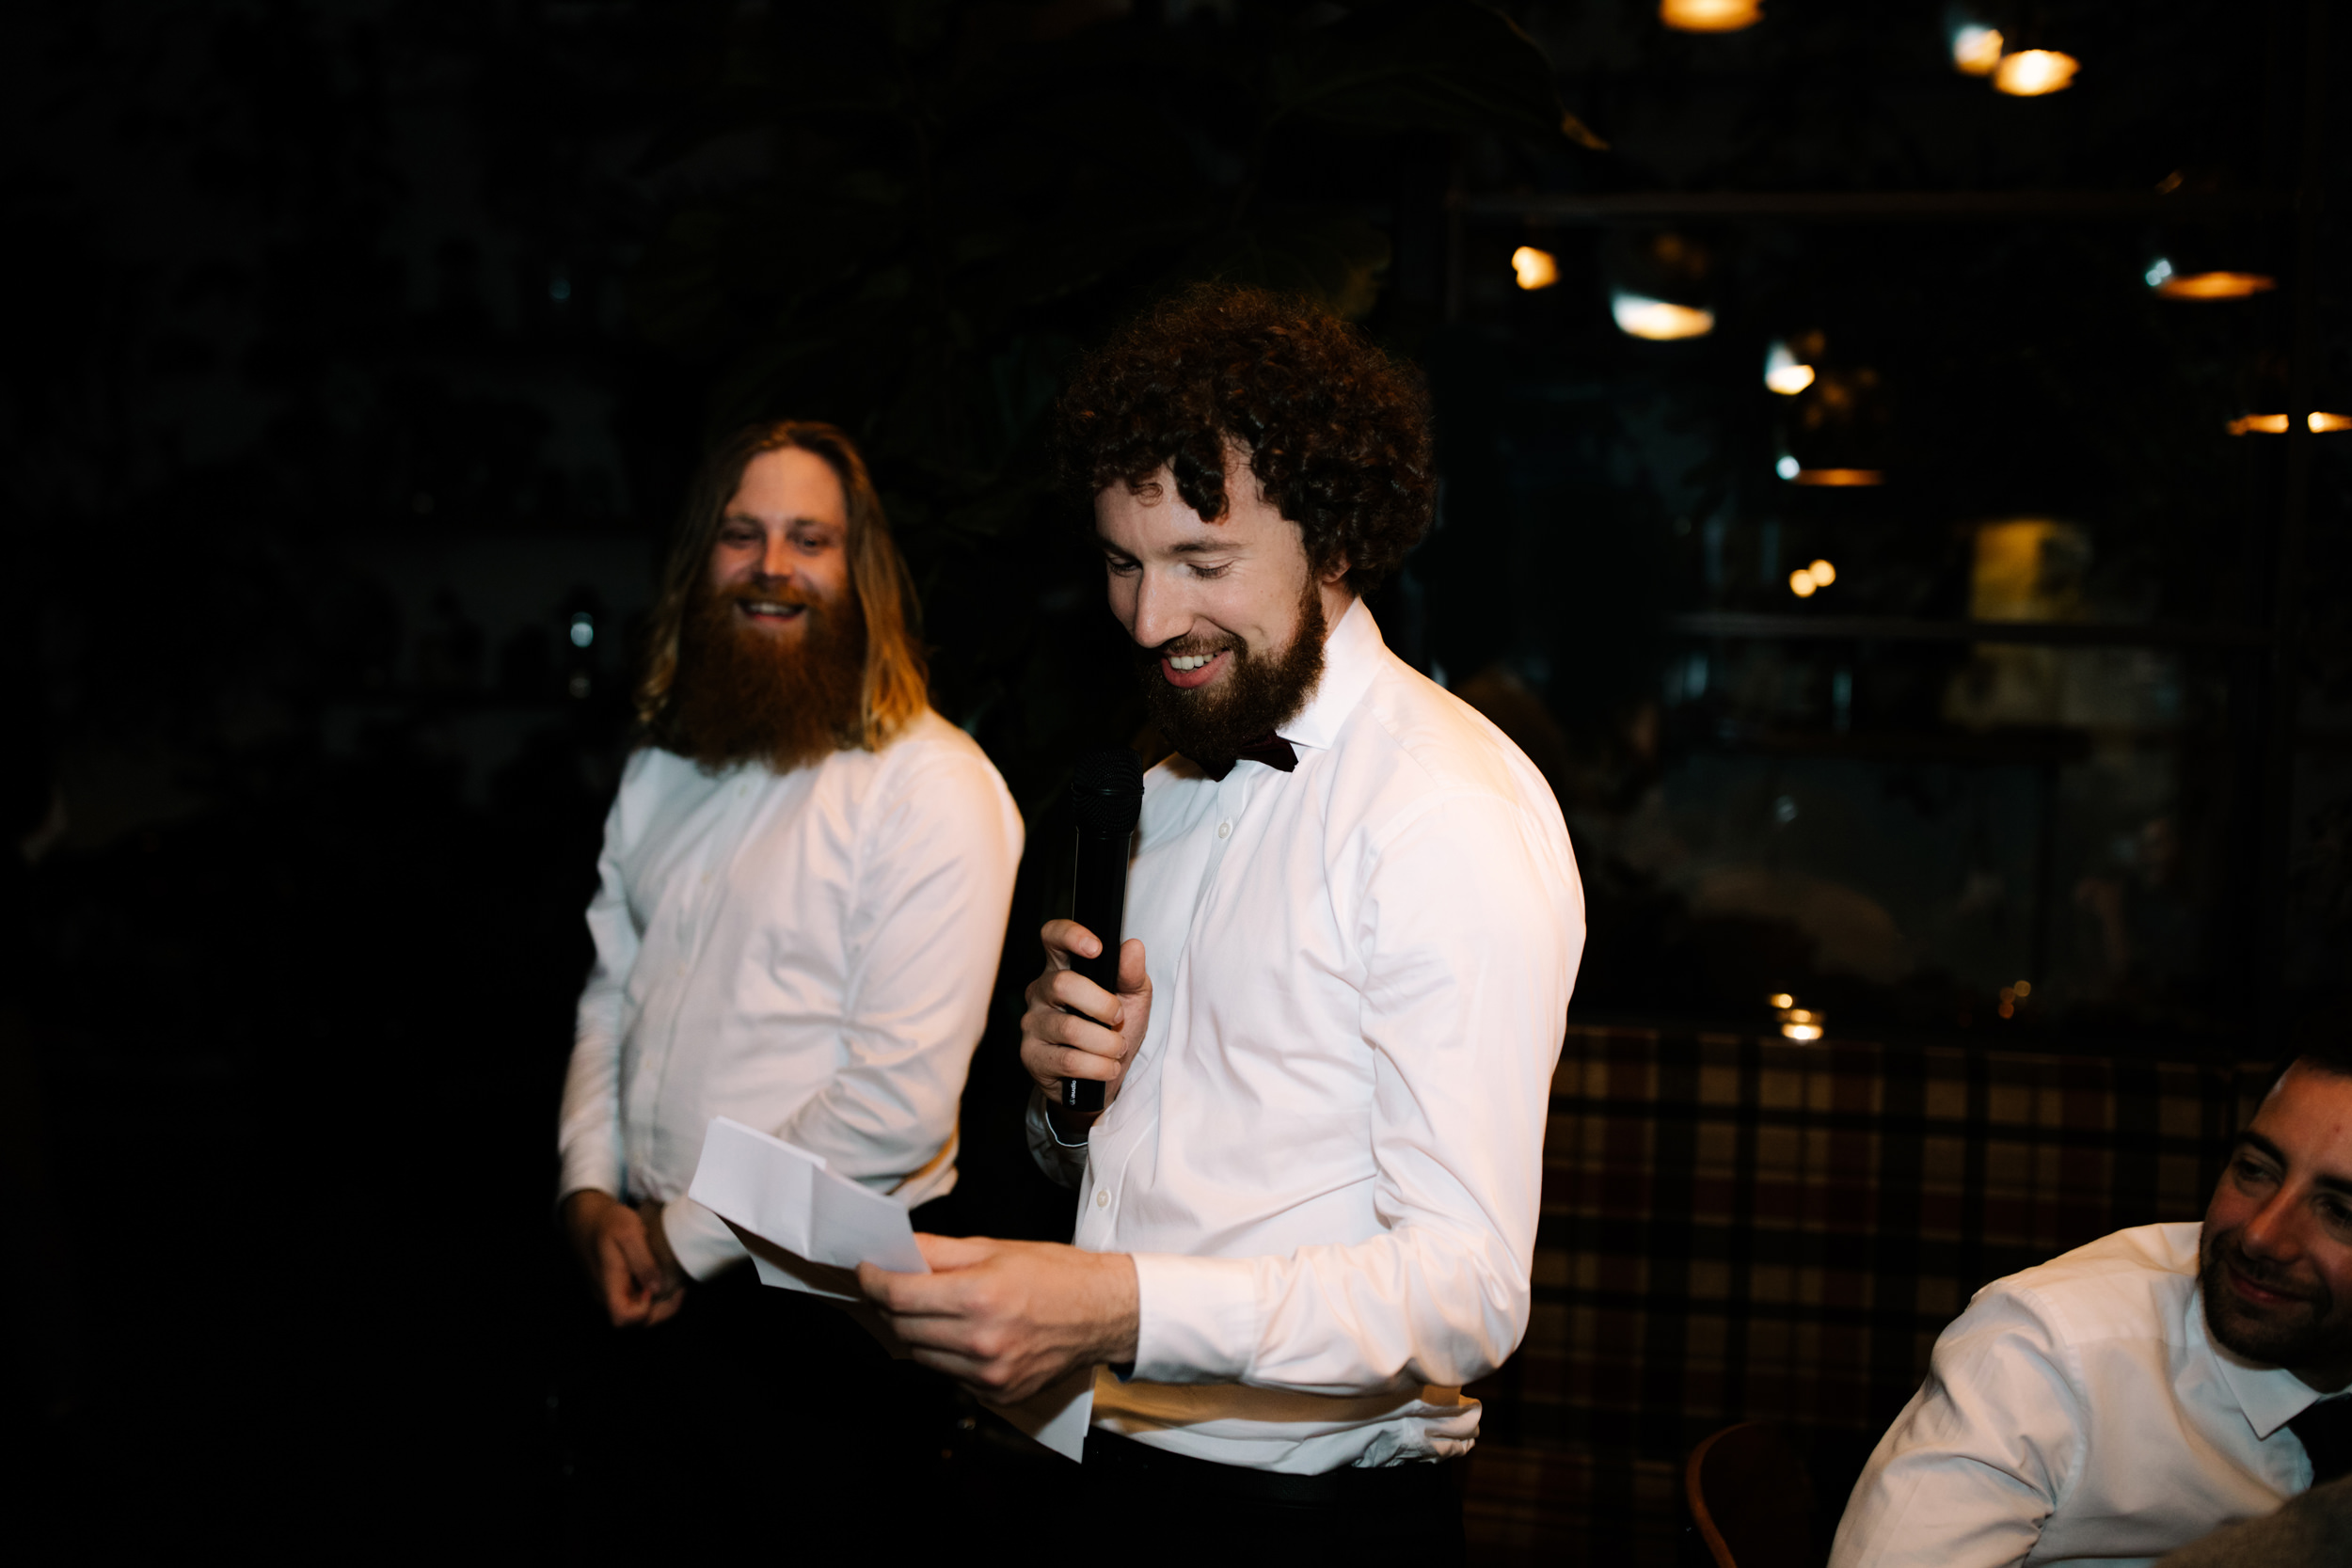 I_Got_You_Babe_Weddings_Emily_Matt_Rupert_Glasshaus_Melbourne0208.JPG